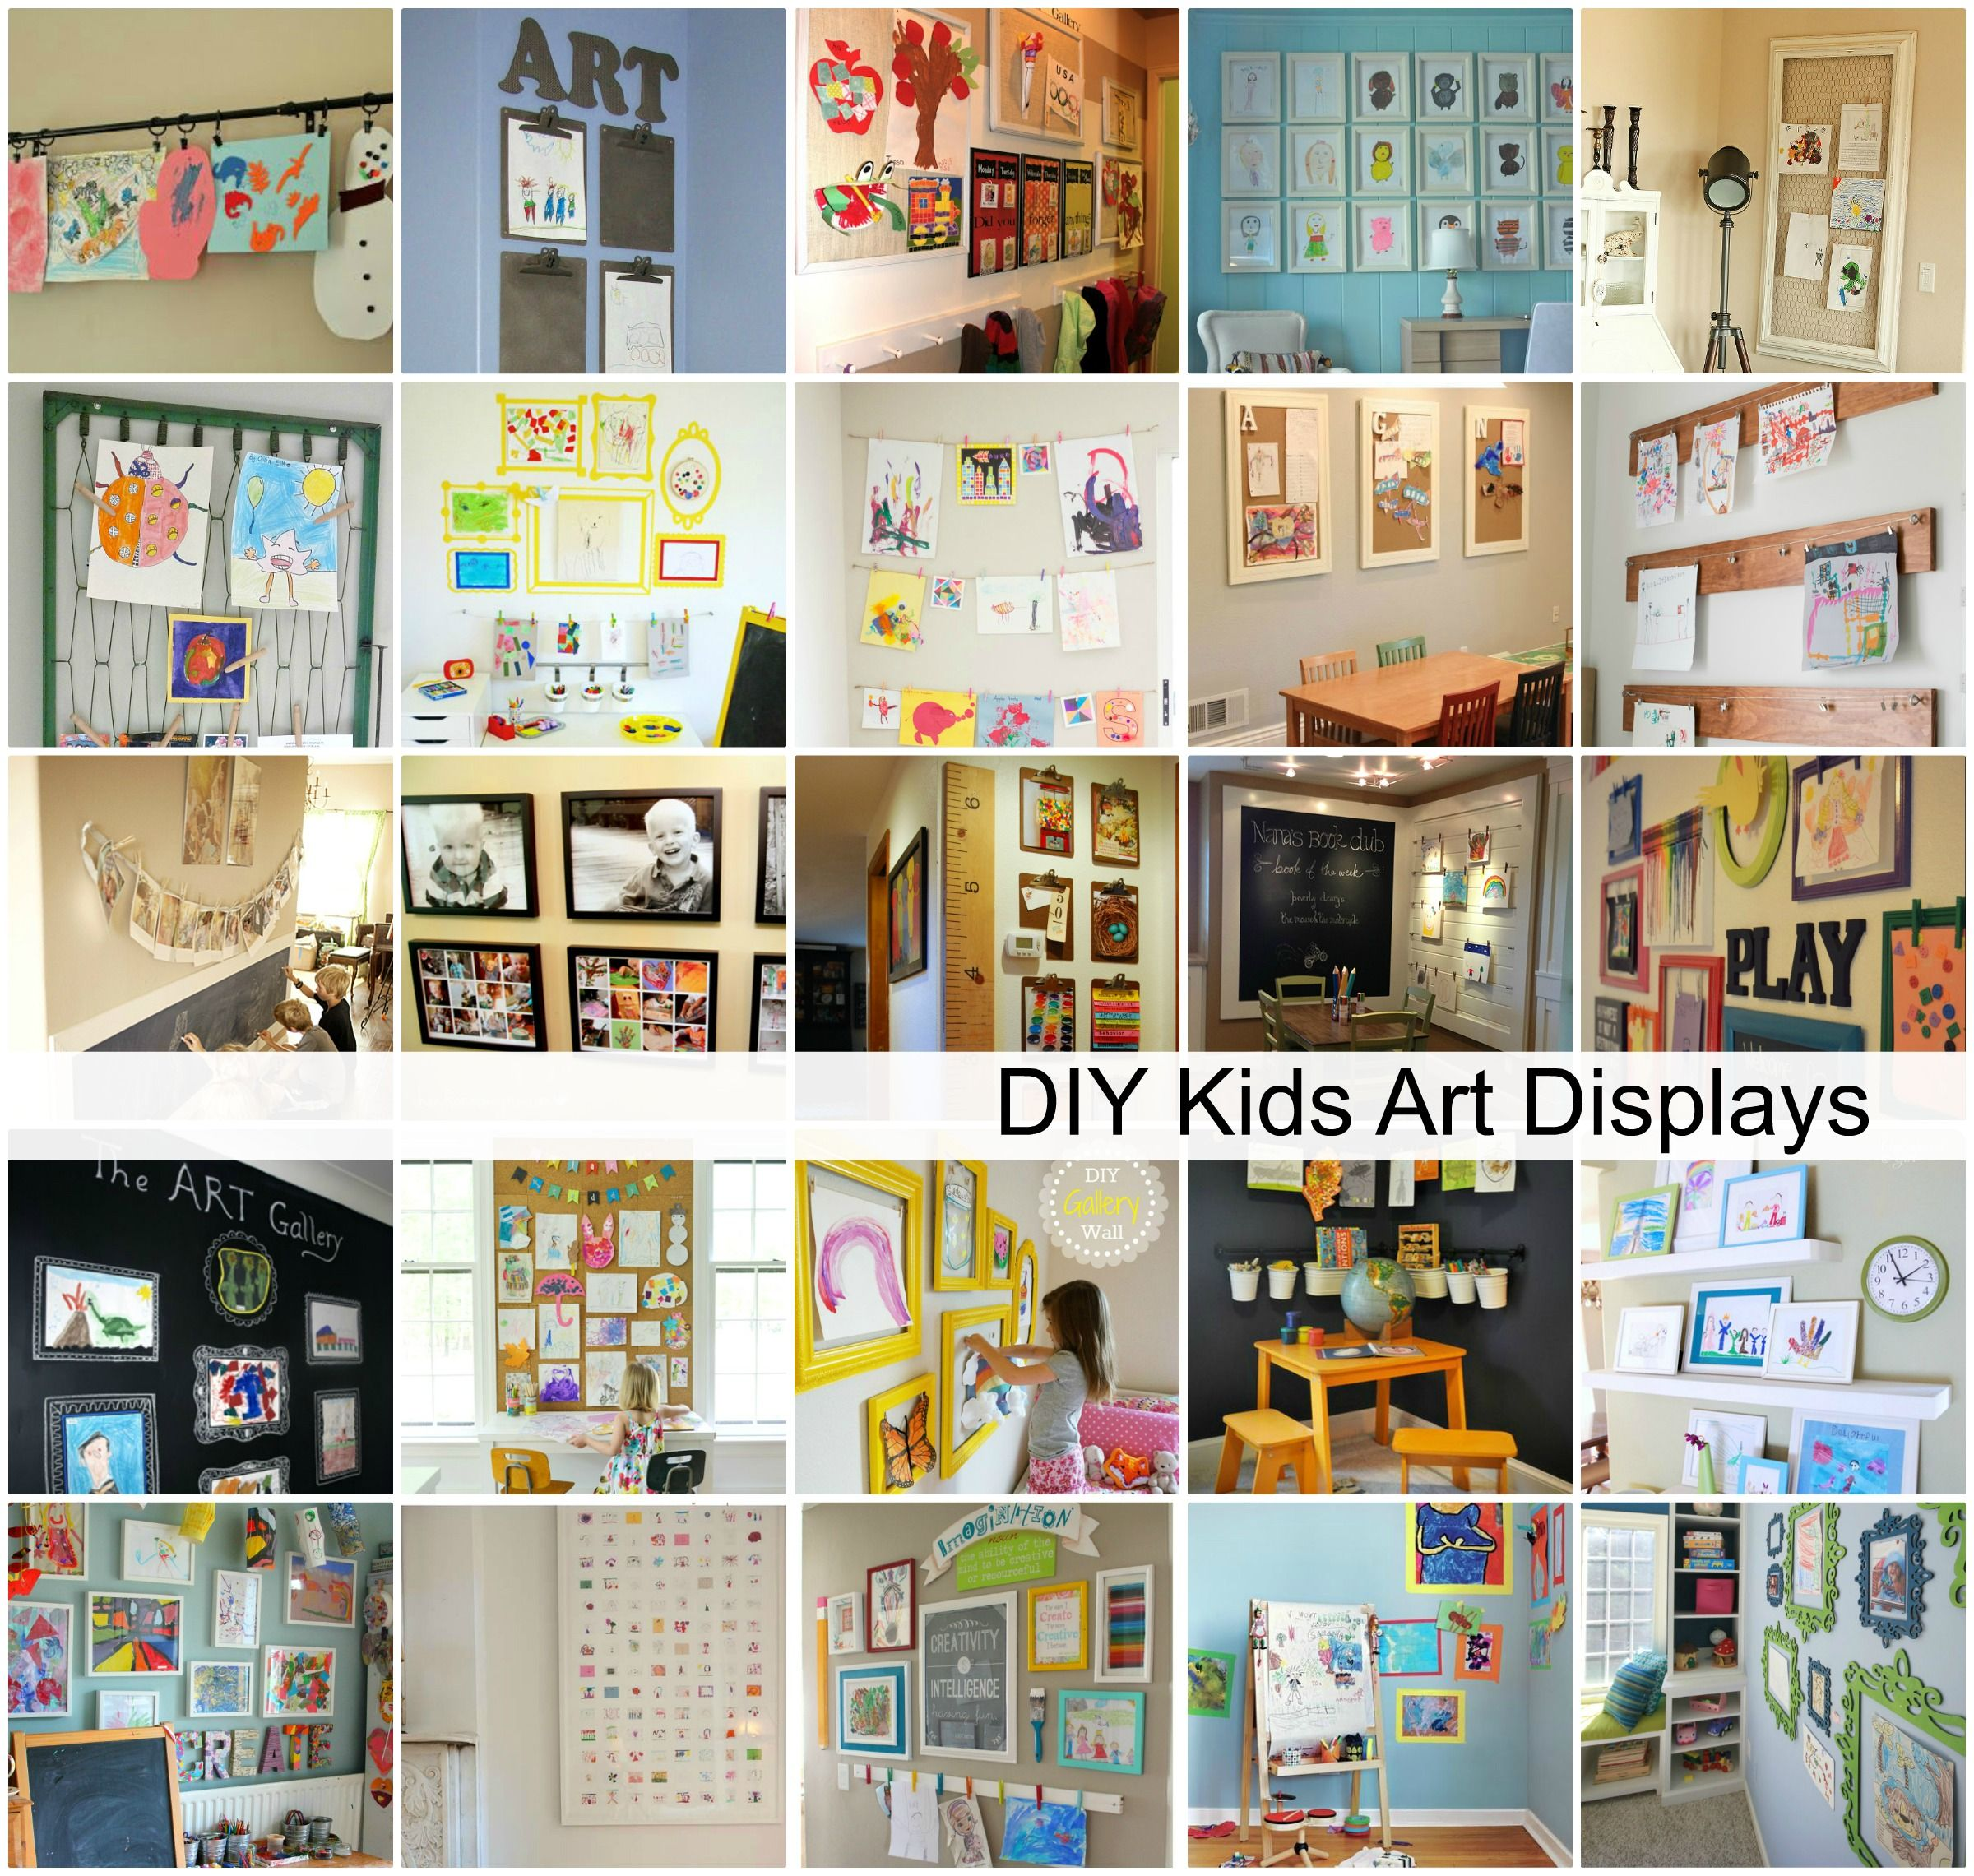 These Diy Kids Art Displays May Be A Great Way